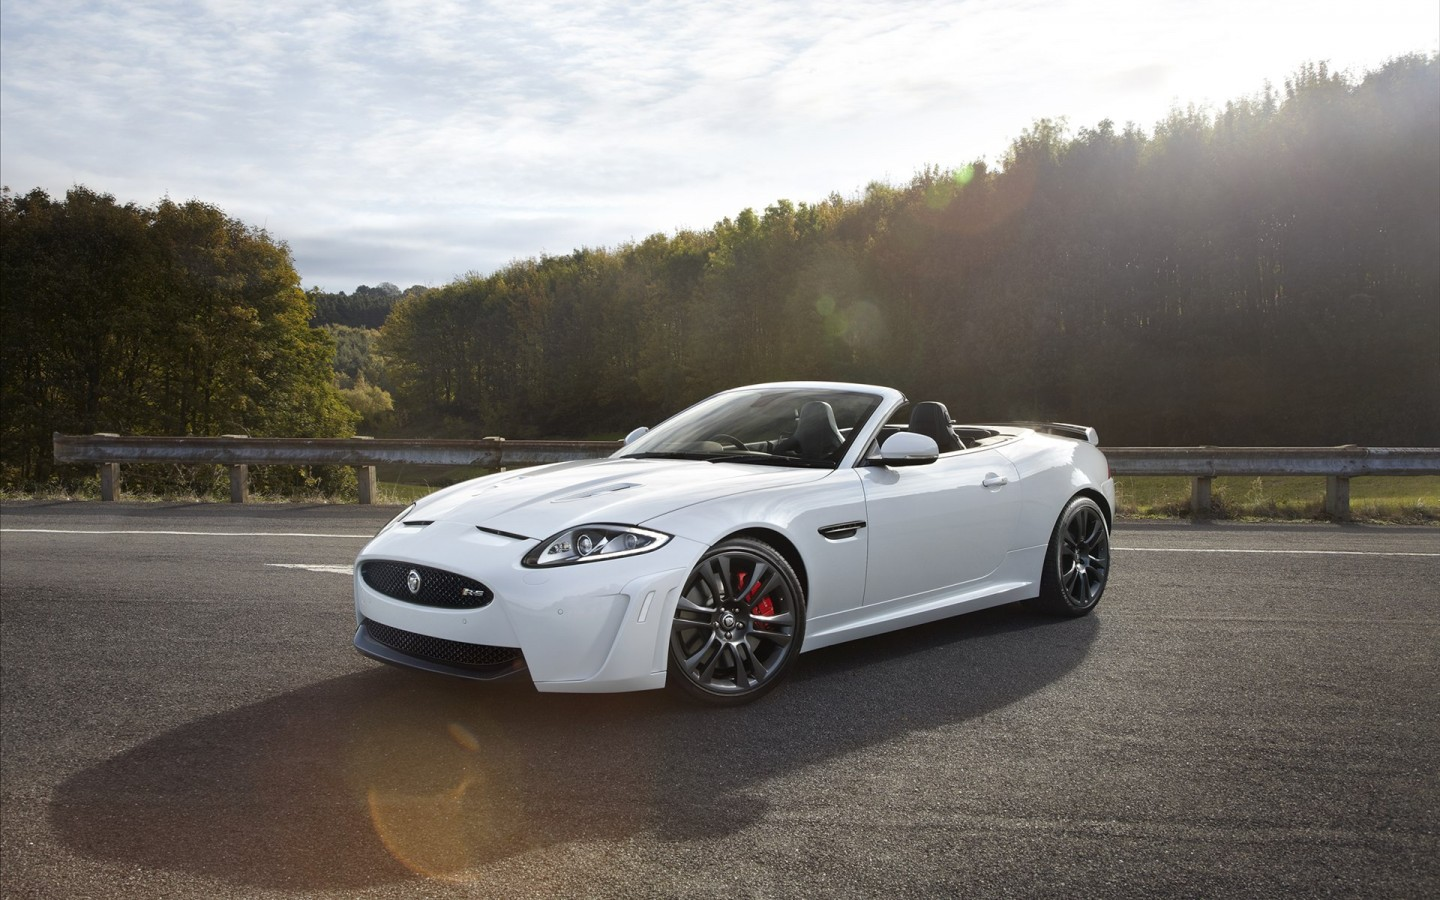 Jaguar Car Wallpaper Wallpapers High Quality: Jaguar Convertible 2012 Wallpaper